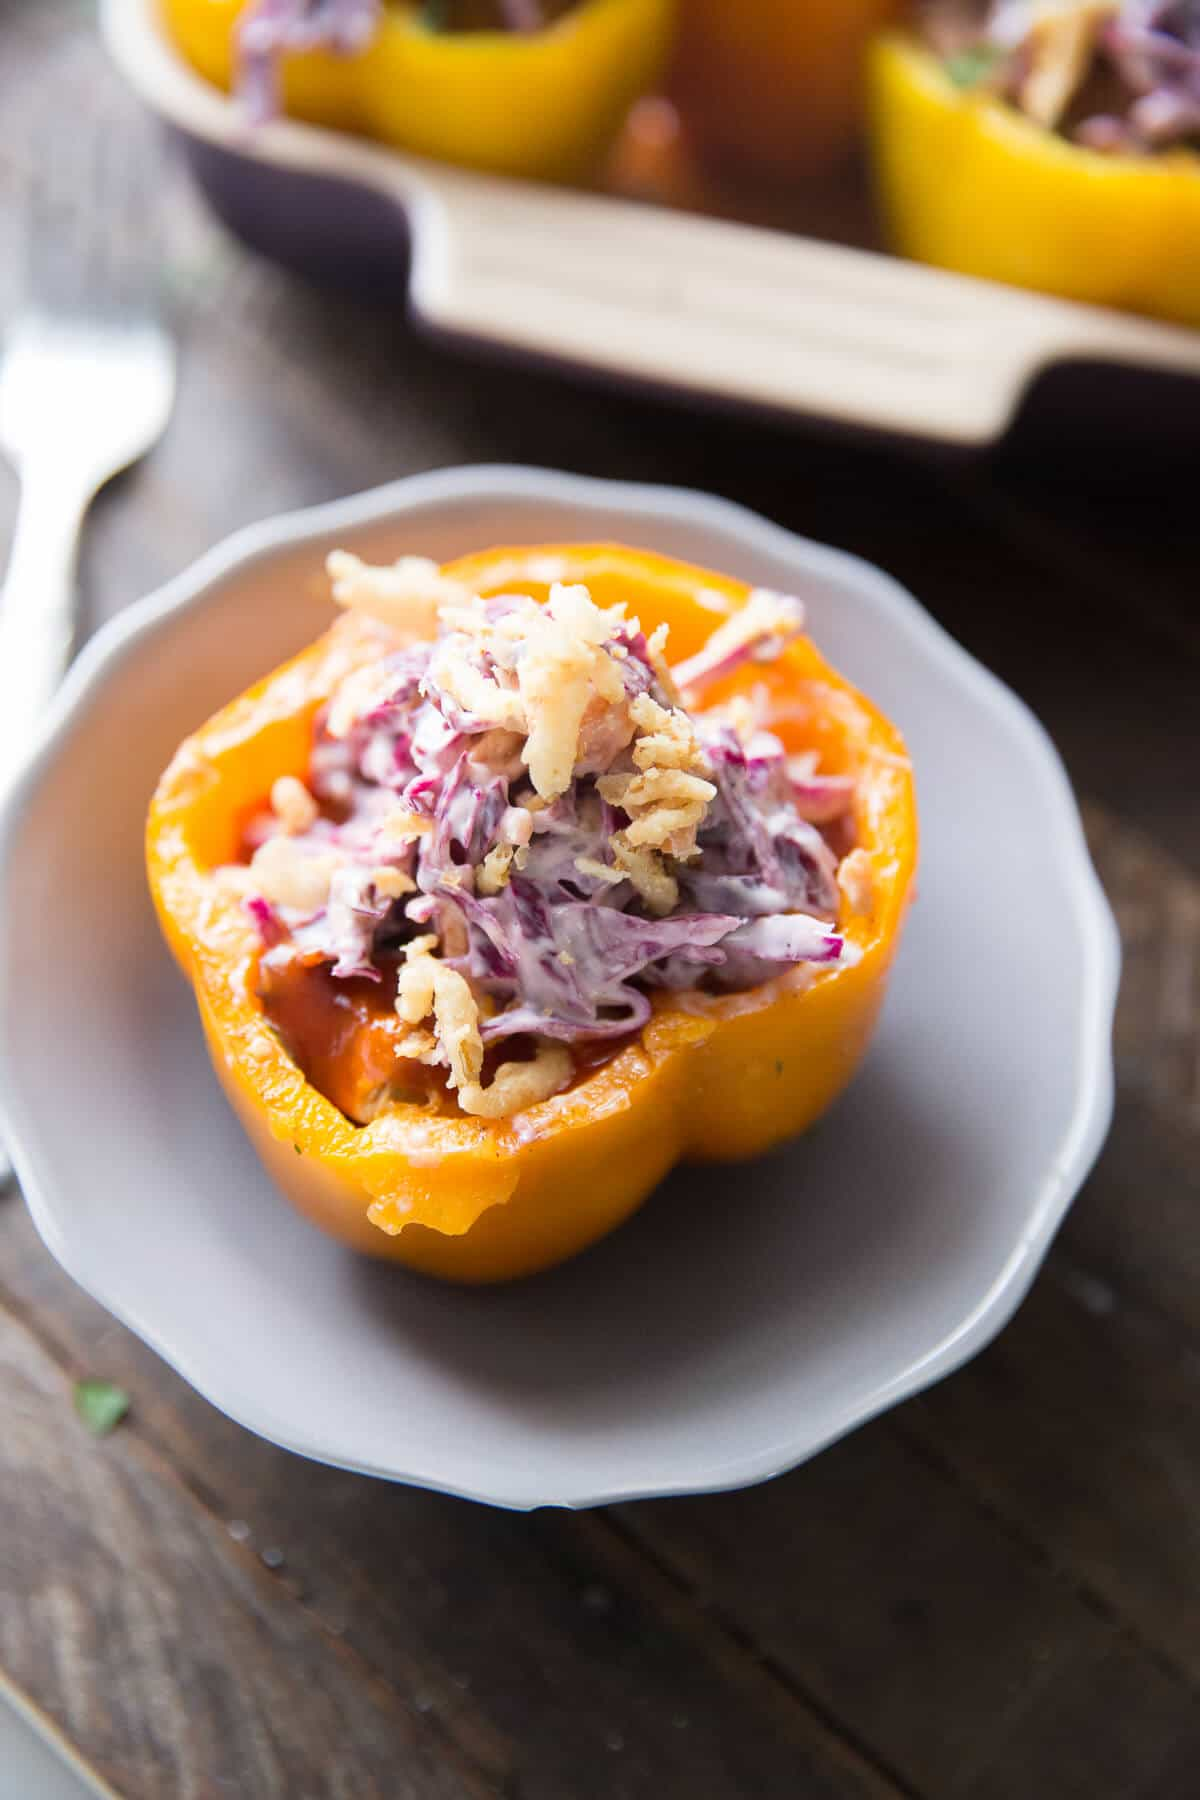 Southwest Stuffed peppers are filled with BBQ brisket and topped with a tangy slaw! The colors and the flavor pop!